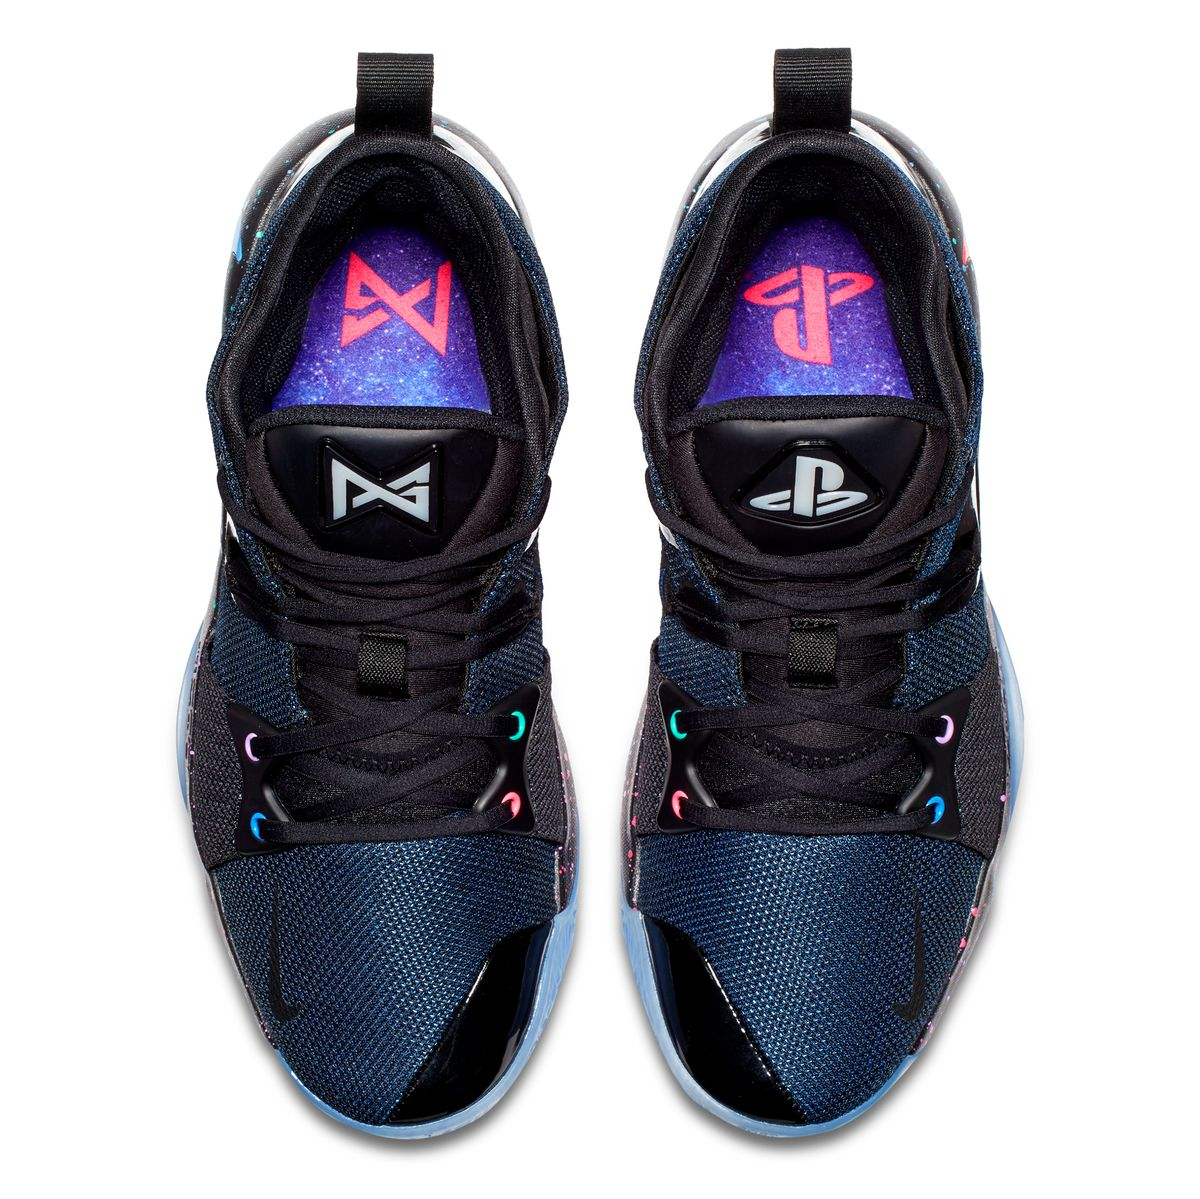 37540575c Nike and PlayStation unite on these limited edition sneakers - The Verge